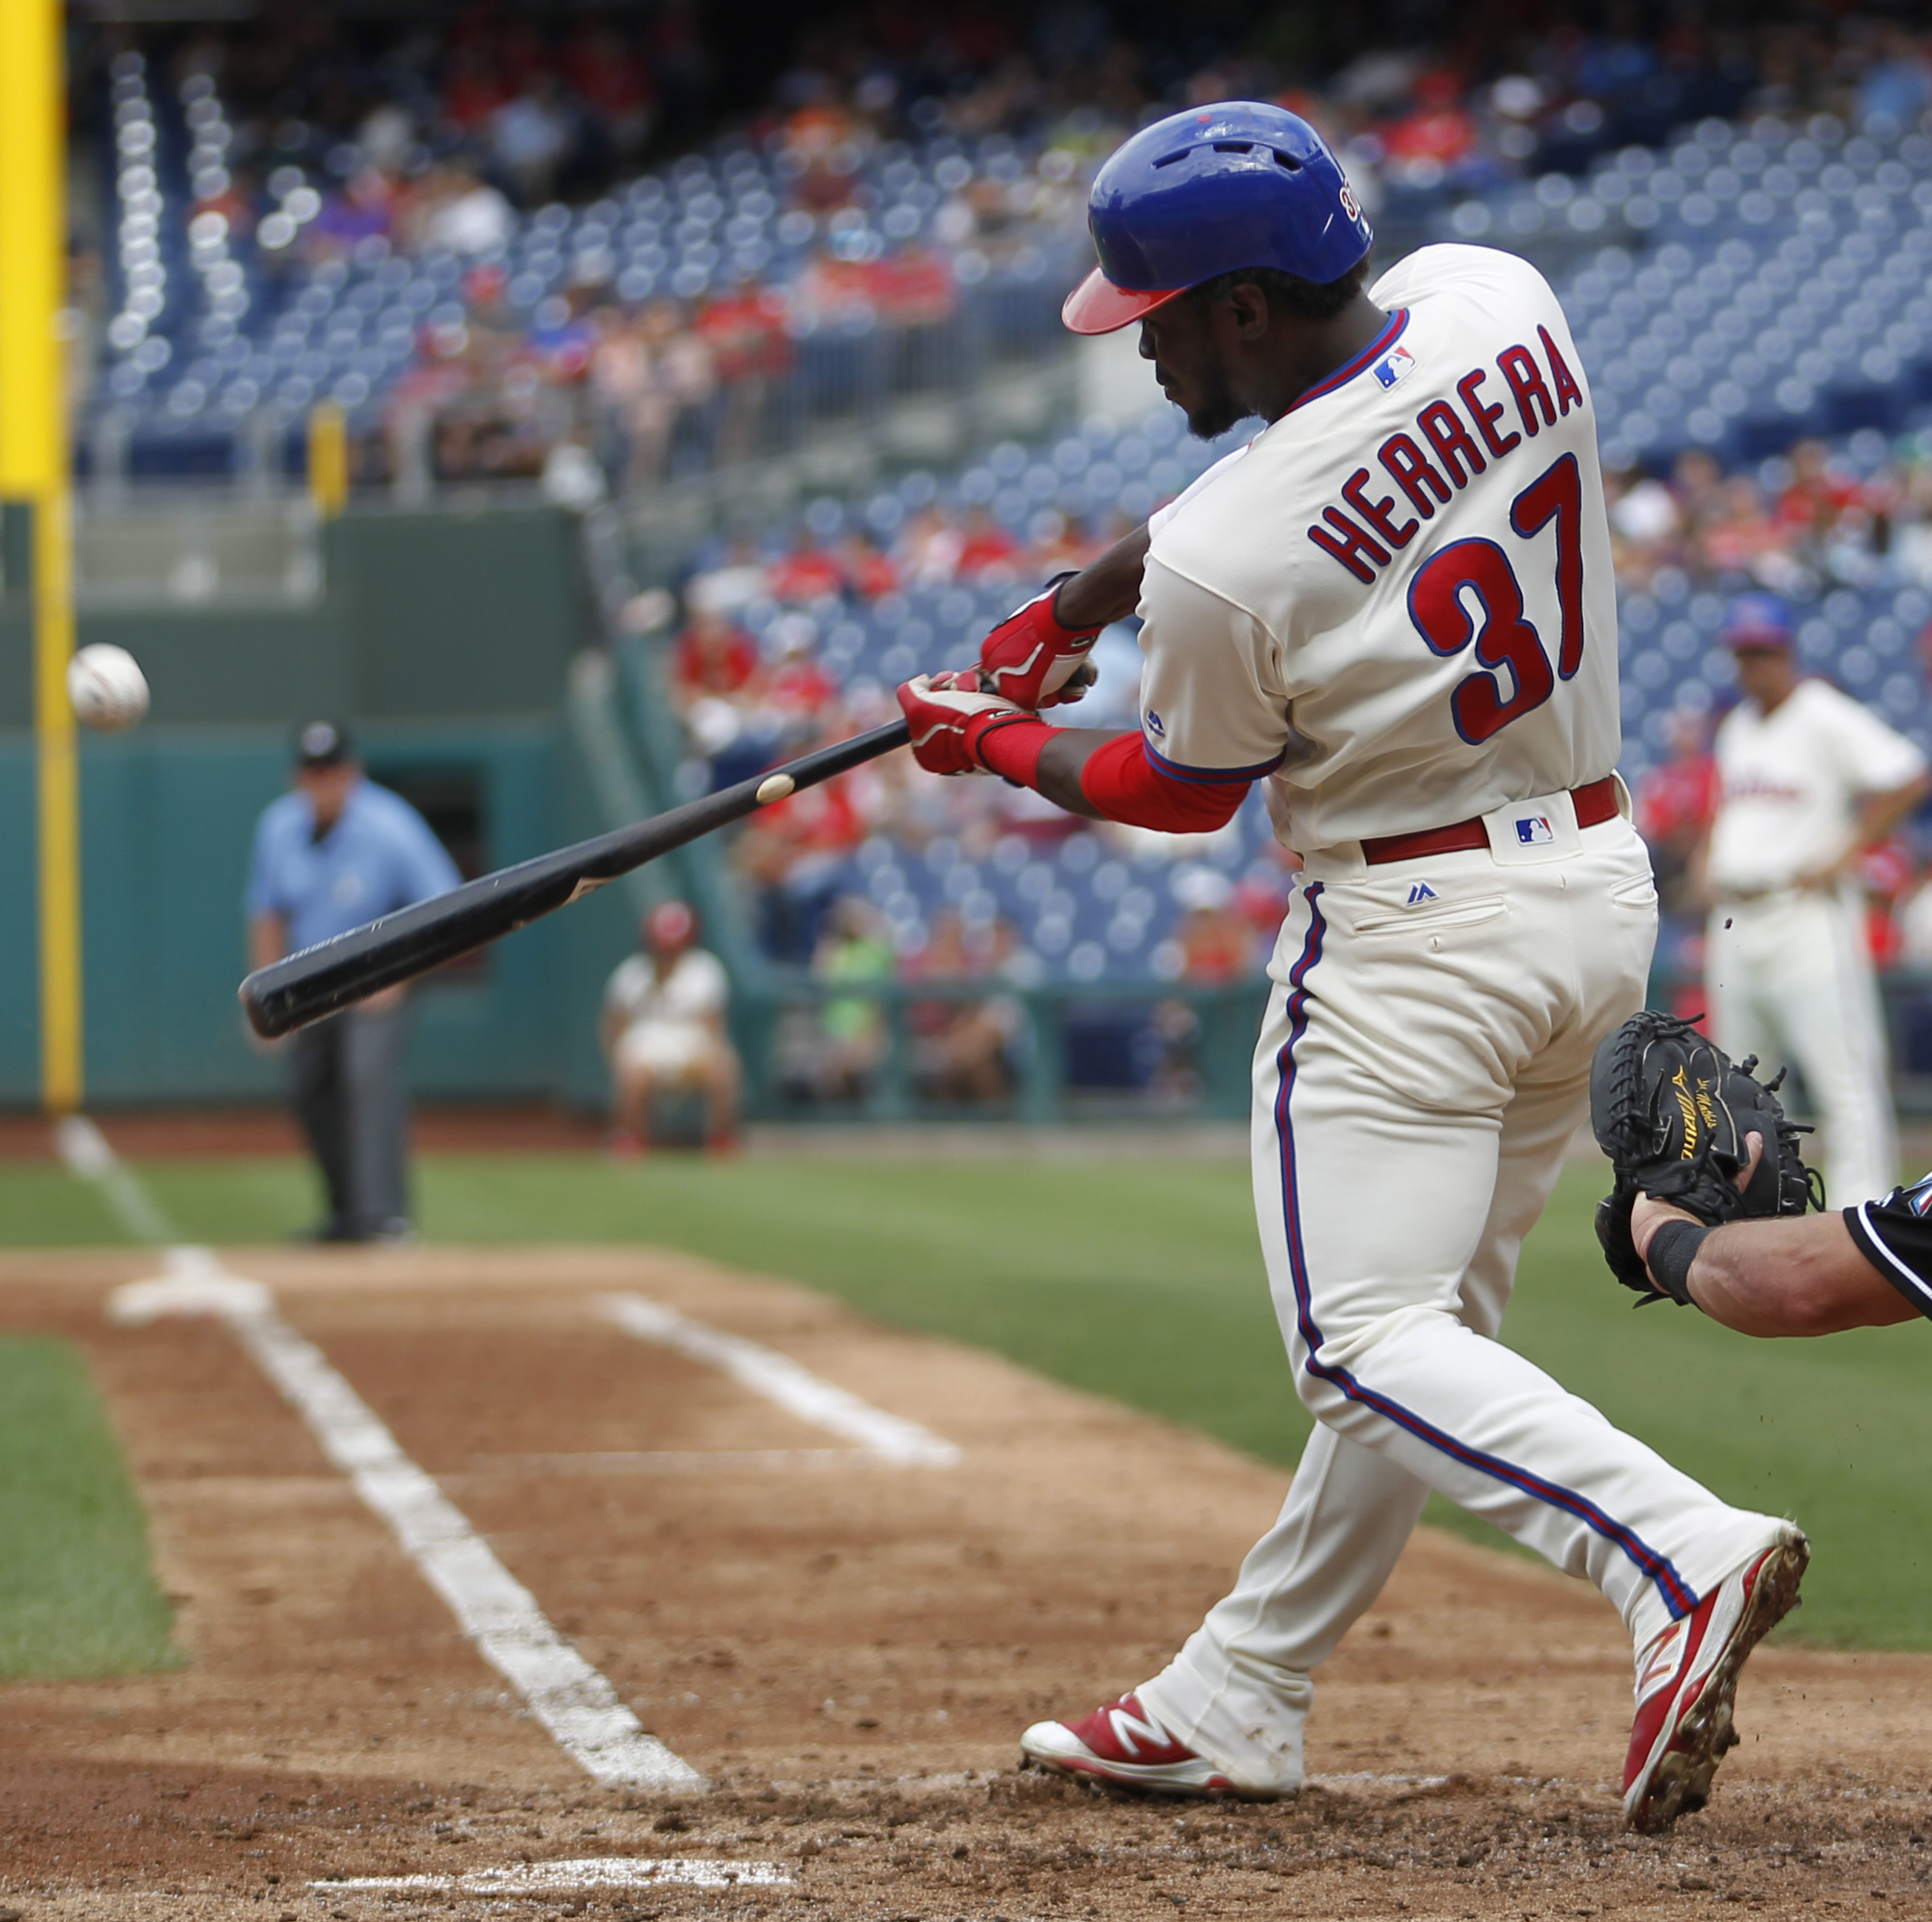 Philadelphia Phillies' Odubel Herrera hits a home run off Miami Marlins starting pitcher Andrew Cashner in the third inning of a baseball game, Sunday, Sept. 18, 2016, in Philadelphia. (AP Photo/Laurence Kesterson)